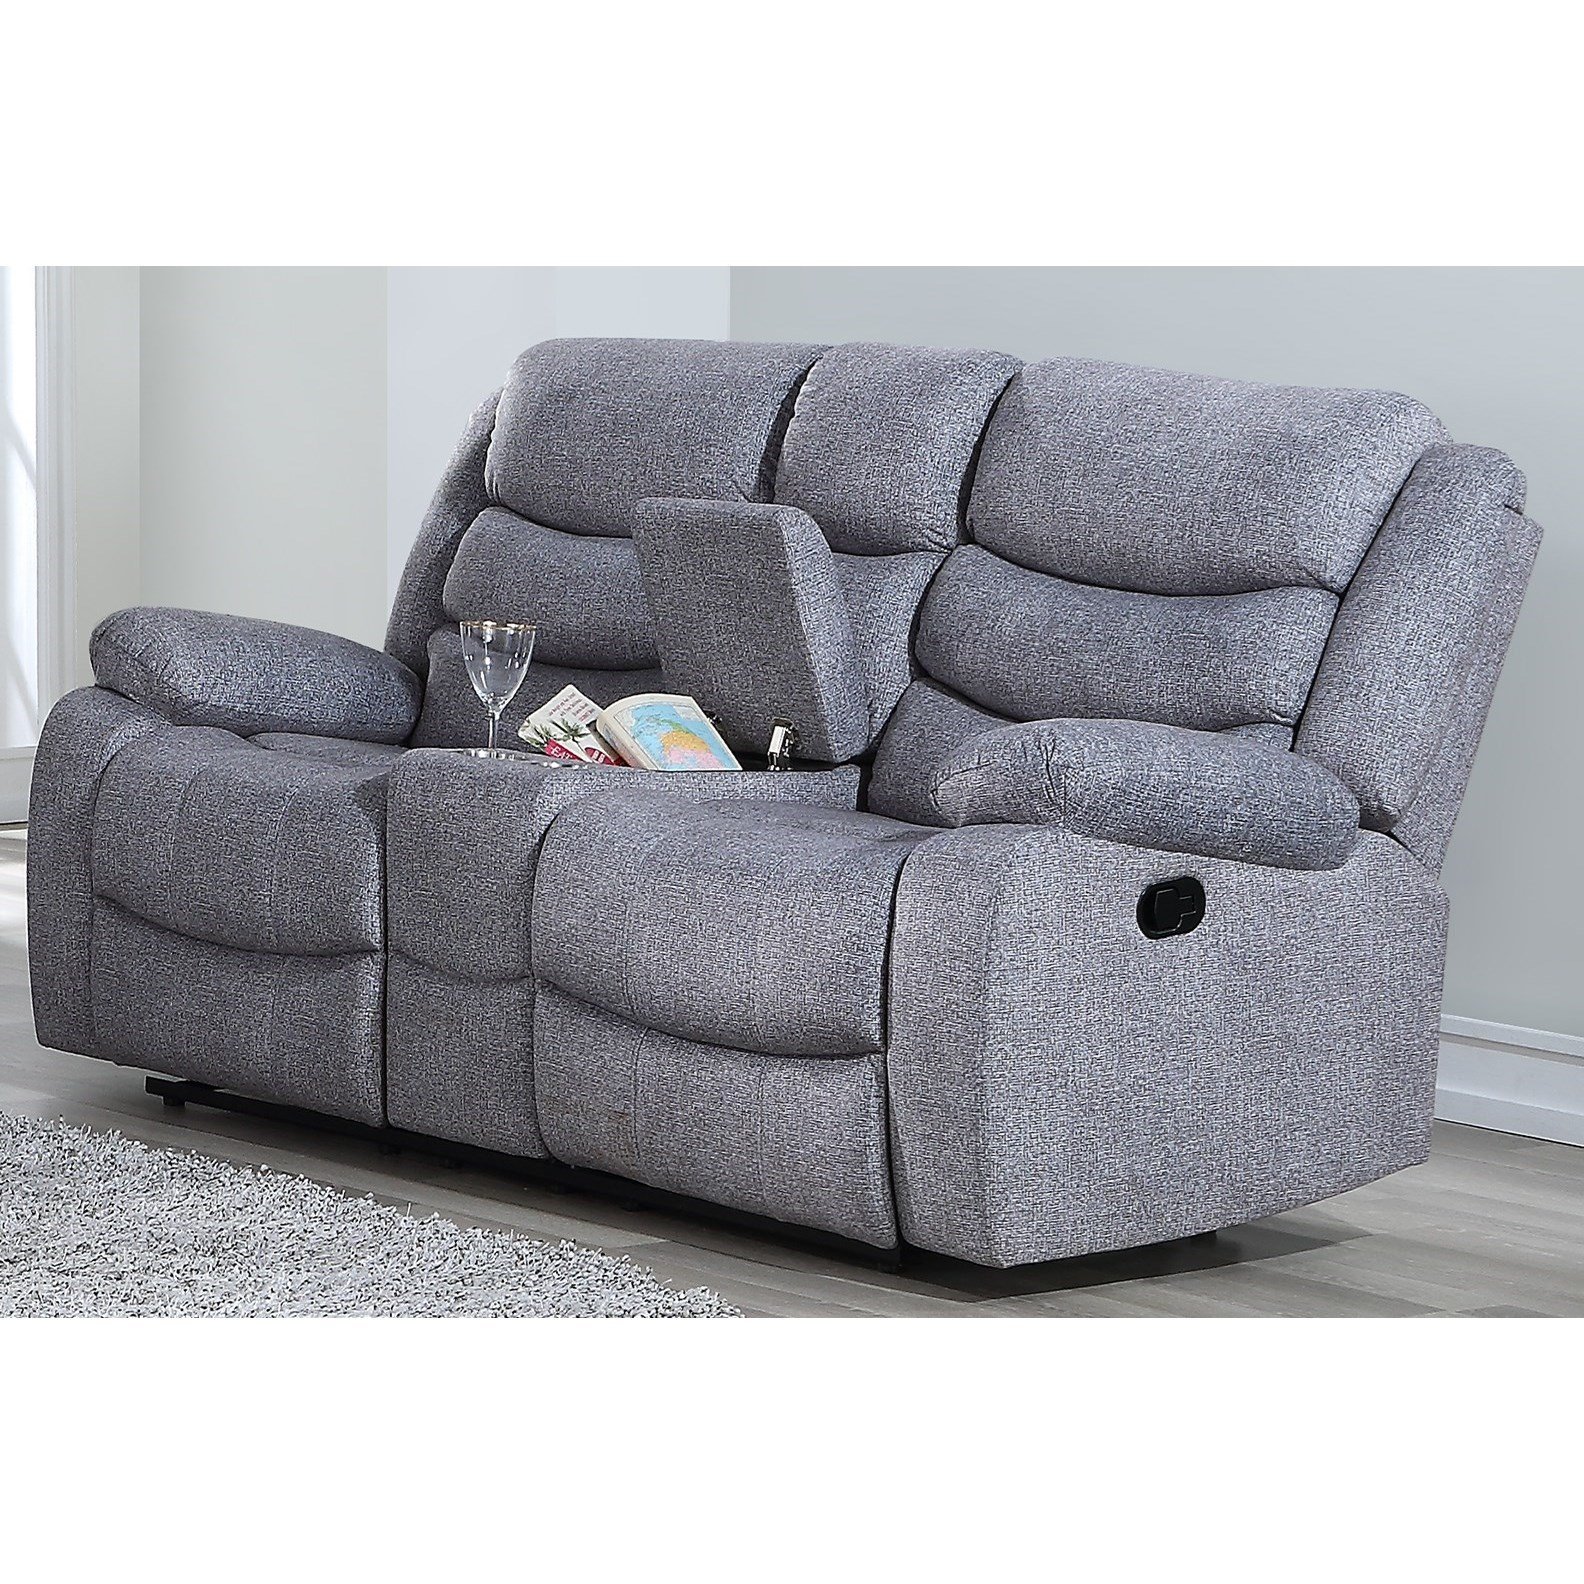 Granada Power Console Loveseat by New Classic at Rife's Home Furniture